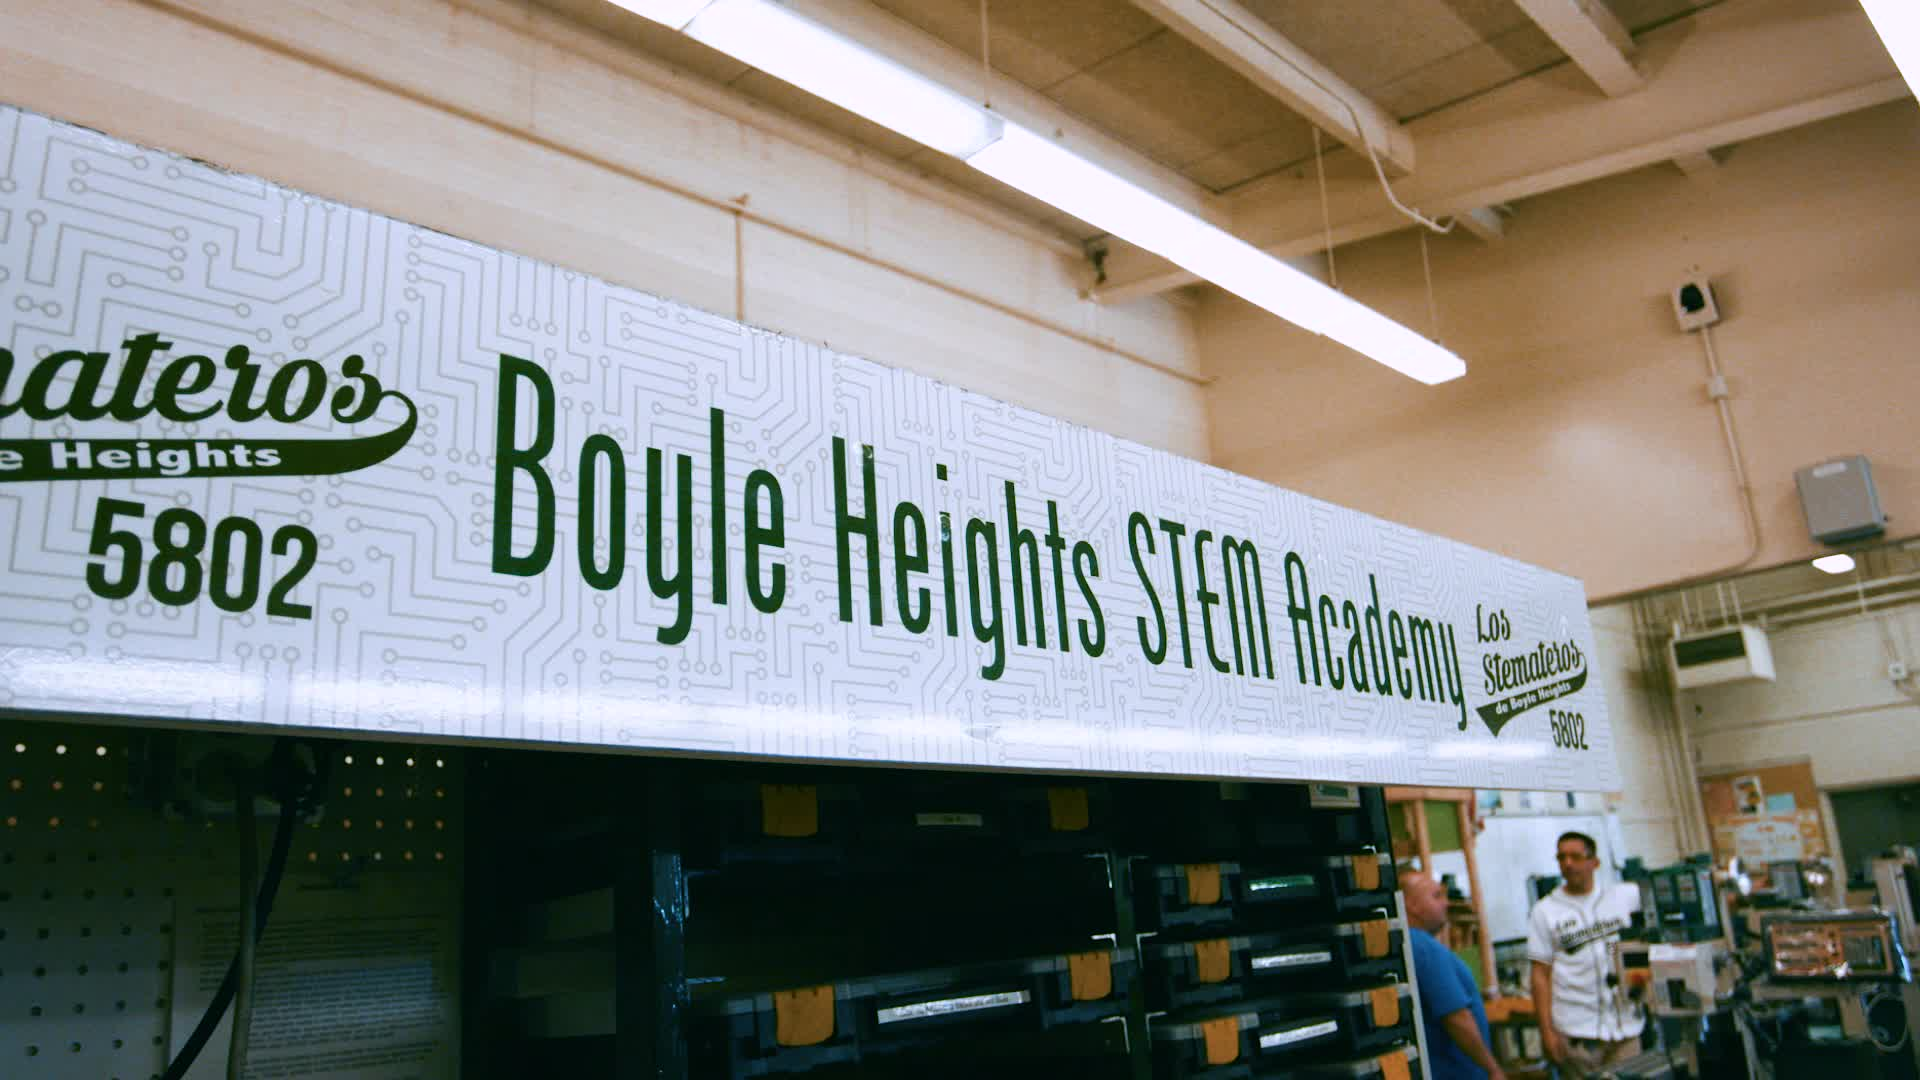 Boyle Heights STEM Magnet High School